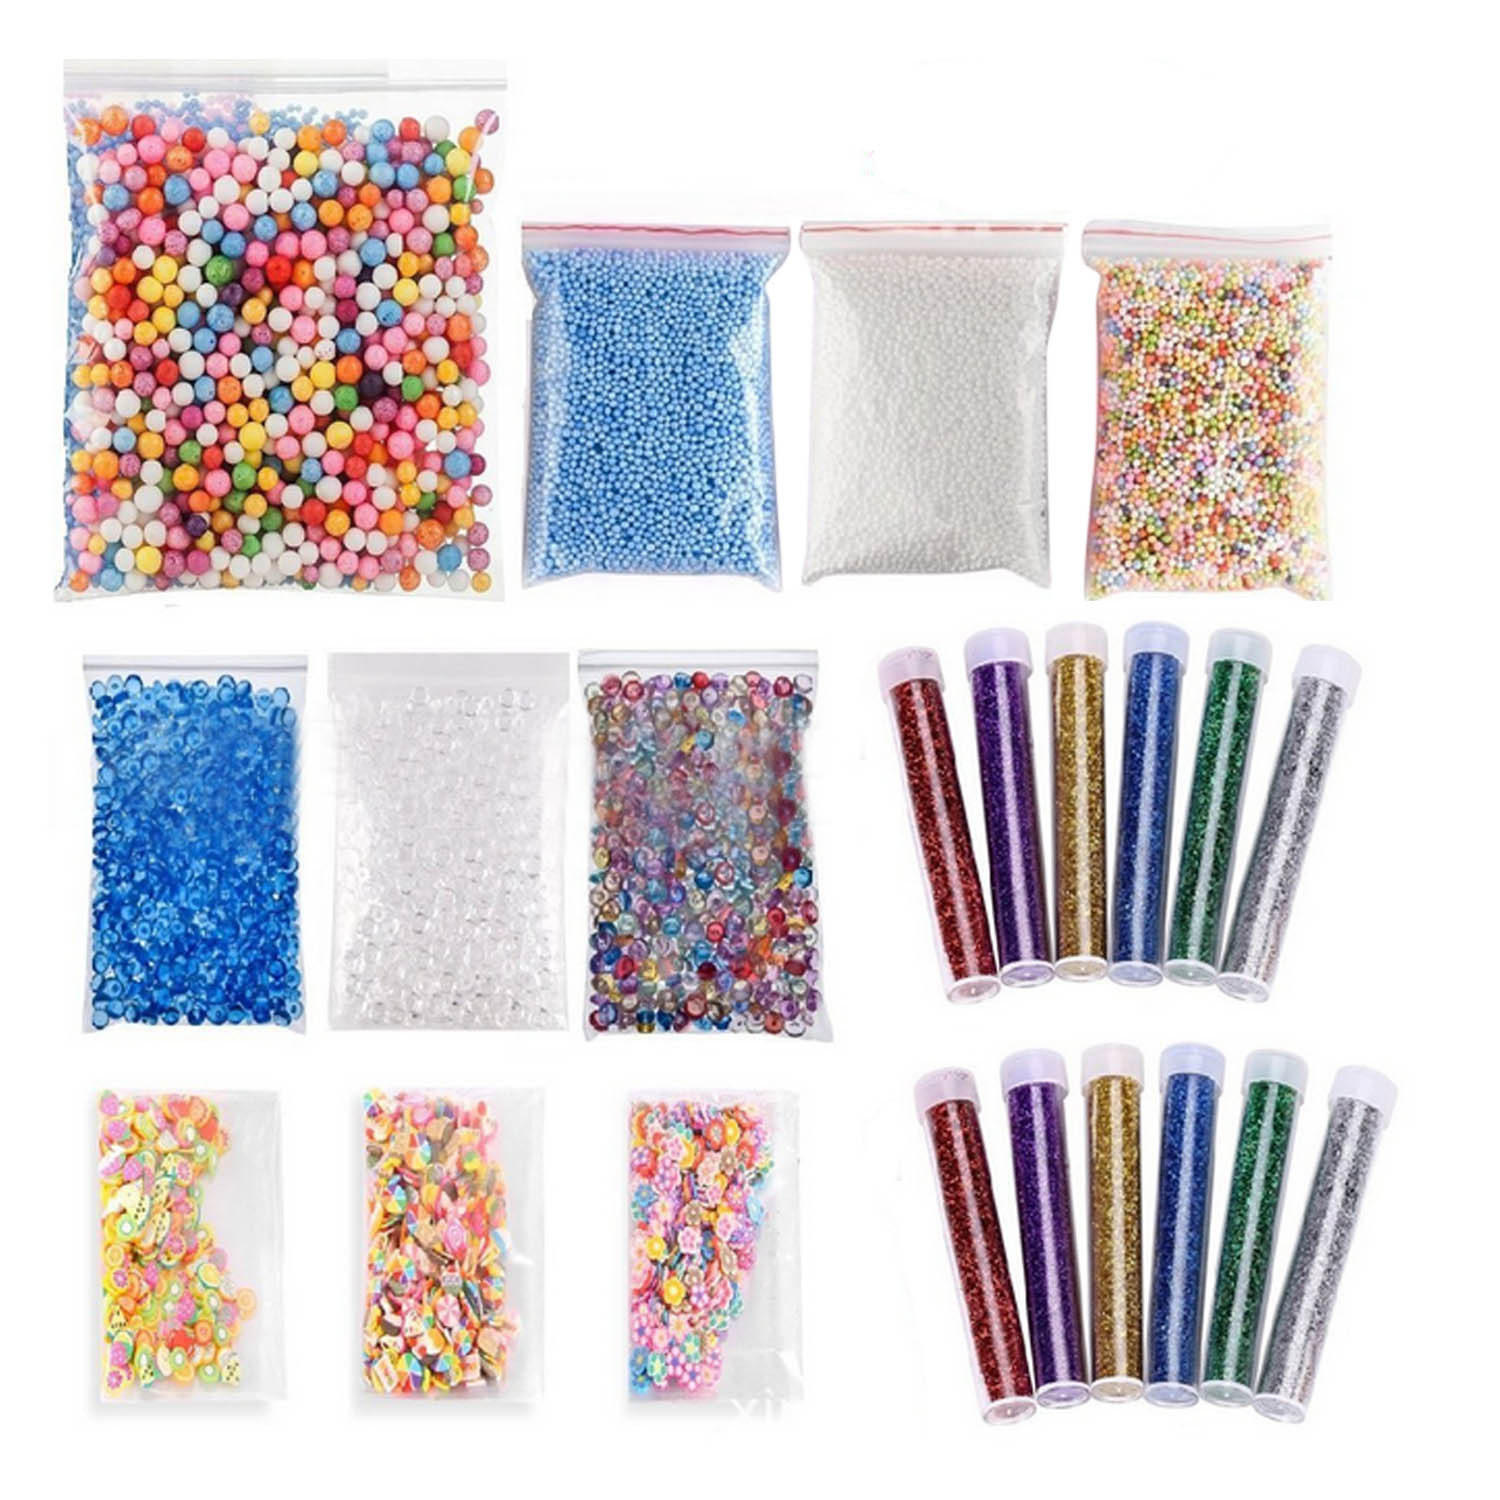 Colorful Styrofoam Beads Foam Balls Glitter Various Shaped Slice Kit for Slime DIY Craft Gift Box Filler Wedding Party Decor